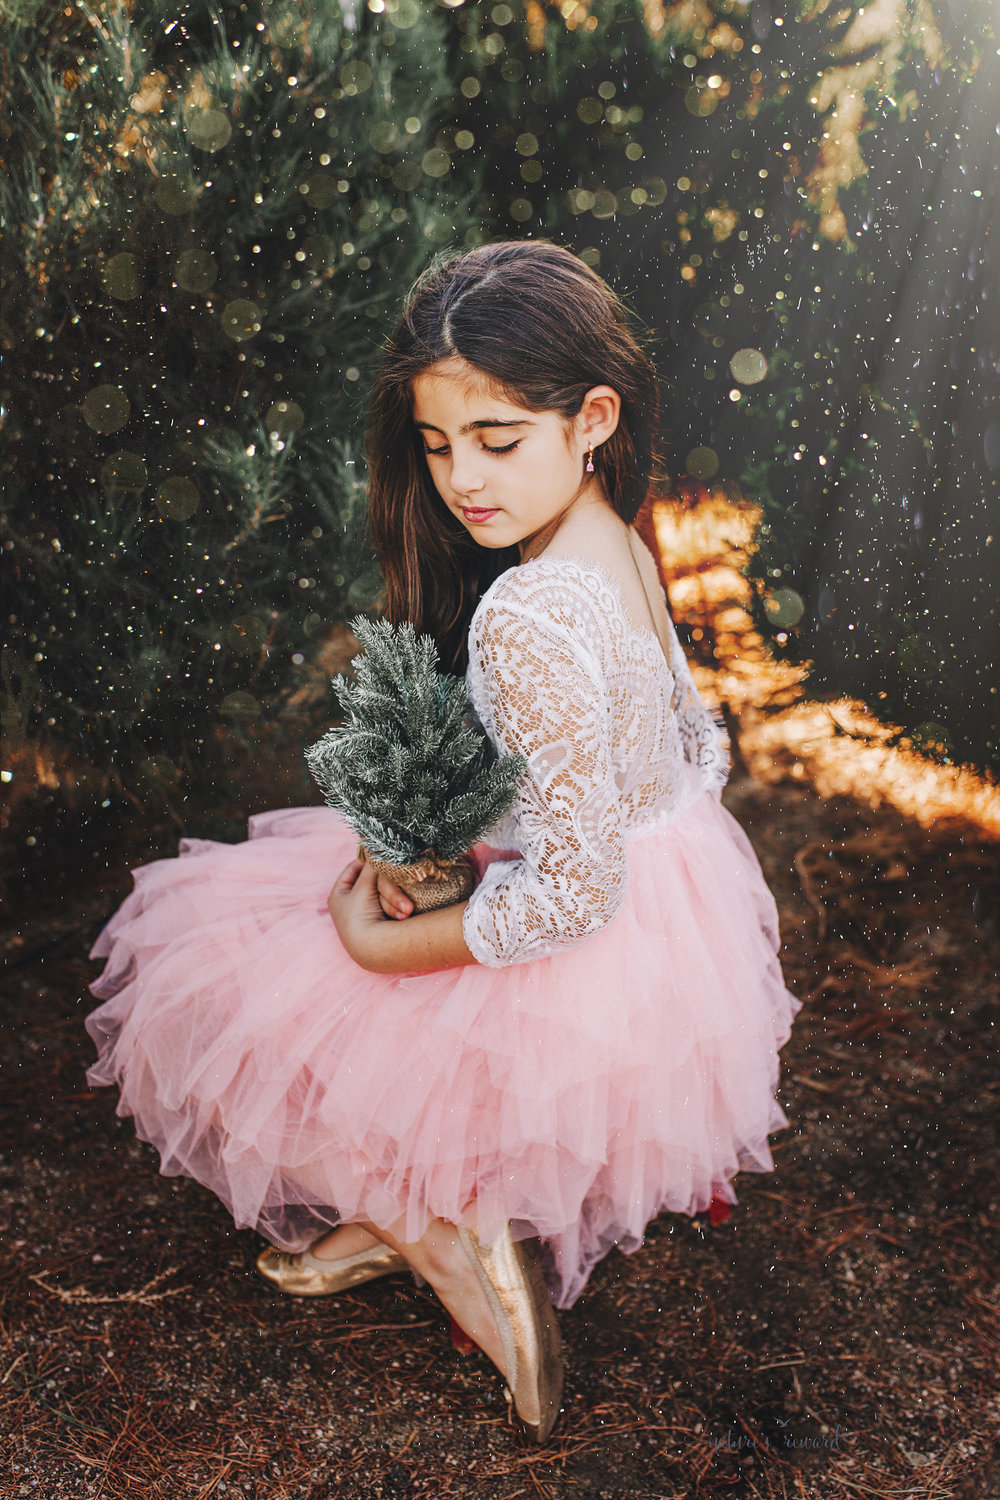 Gorgeous young lady - A Christmas tree farm portrait by Nature's Reward Photography